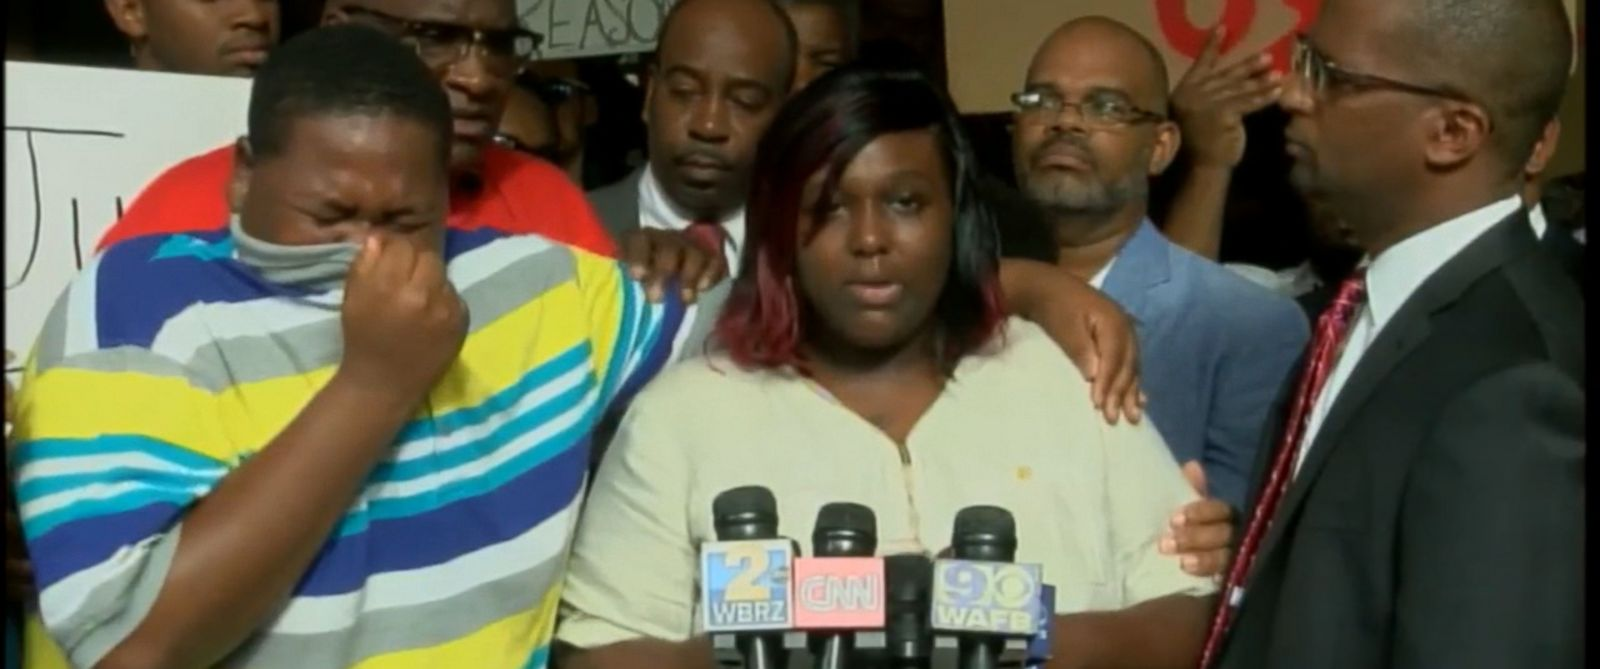 PHOTO: The son of Alton Sterling, a black man who was shot and killed during a confrontation with police officers in Baton Rouge, Louisiana, wept uncontrollably this morning as his mother spoke to the media.